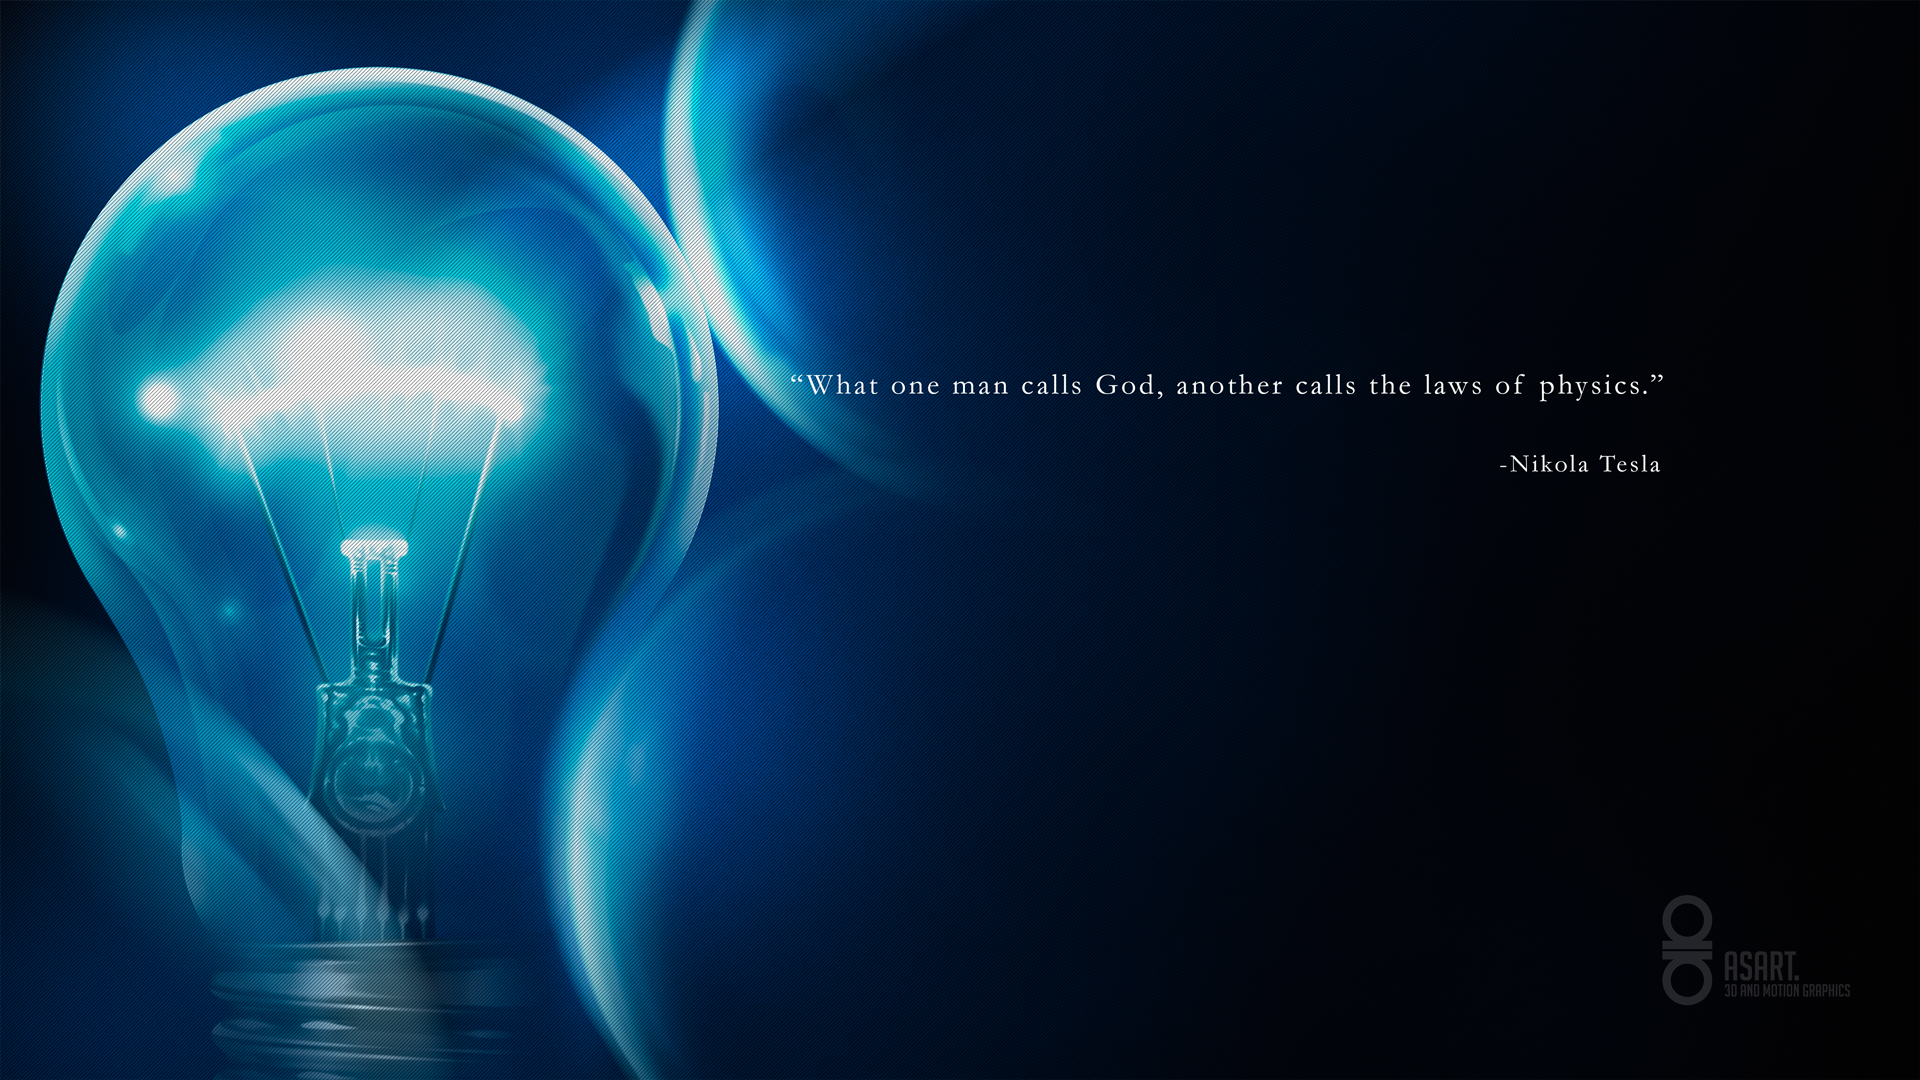 Free Desktop Wallpapers Asart 3d And Motion Graphics